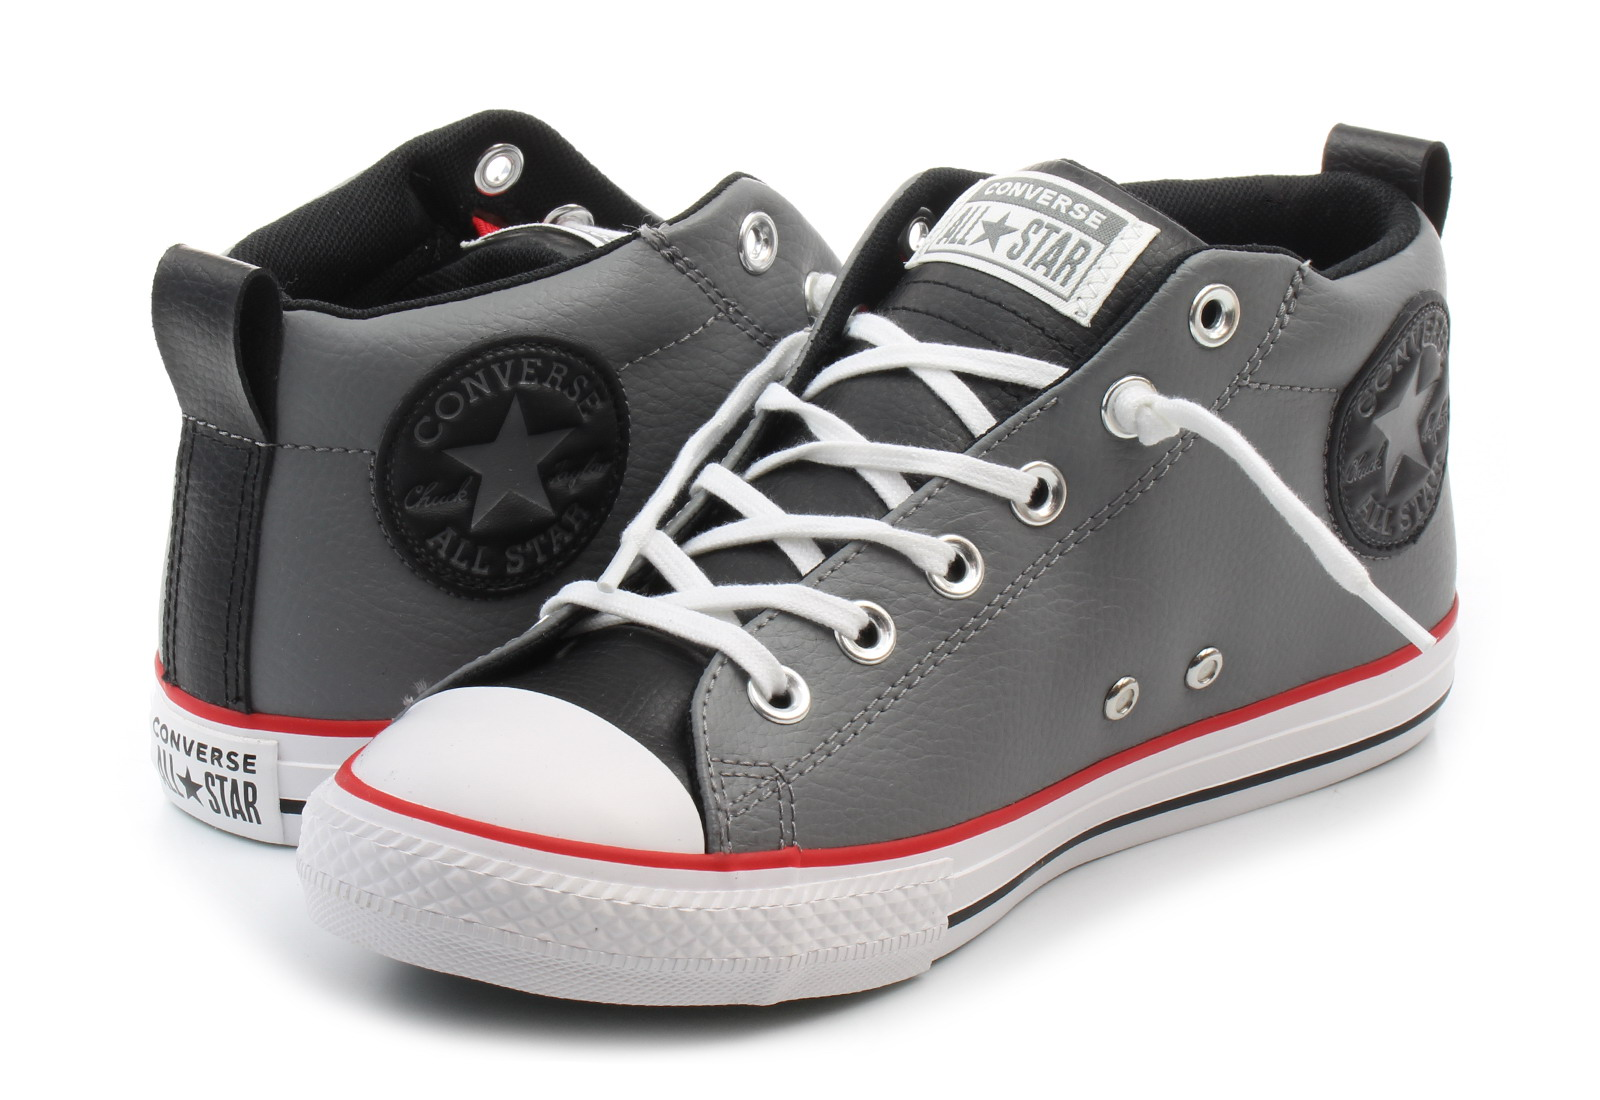 4a376f73d294 Converse Sneakers - Chuck Taylor All Star Street Mid - 661888C ...